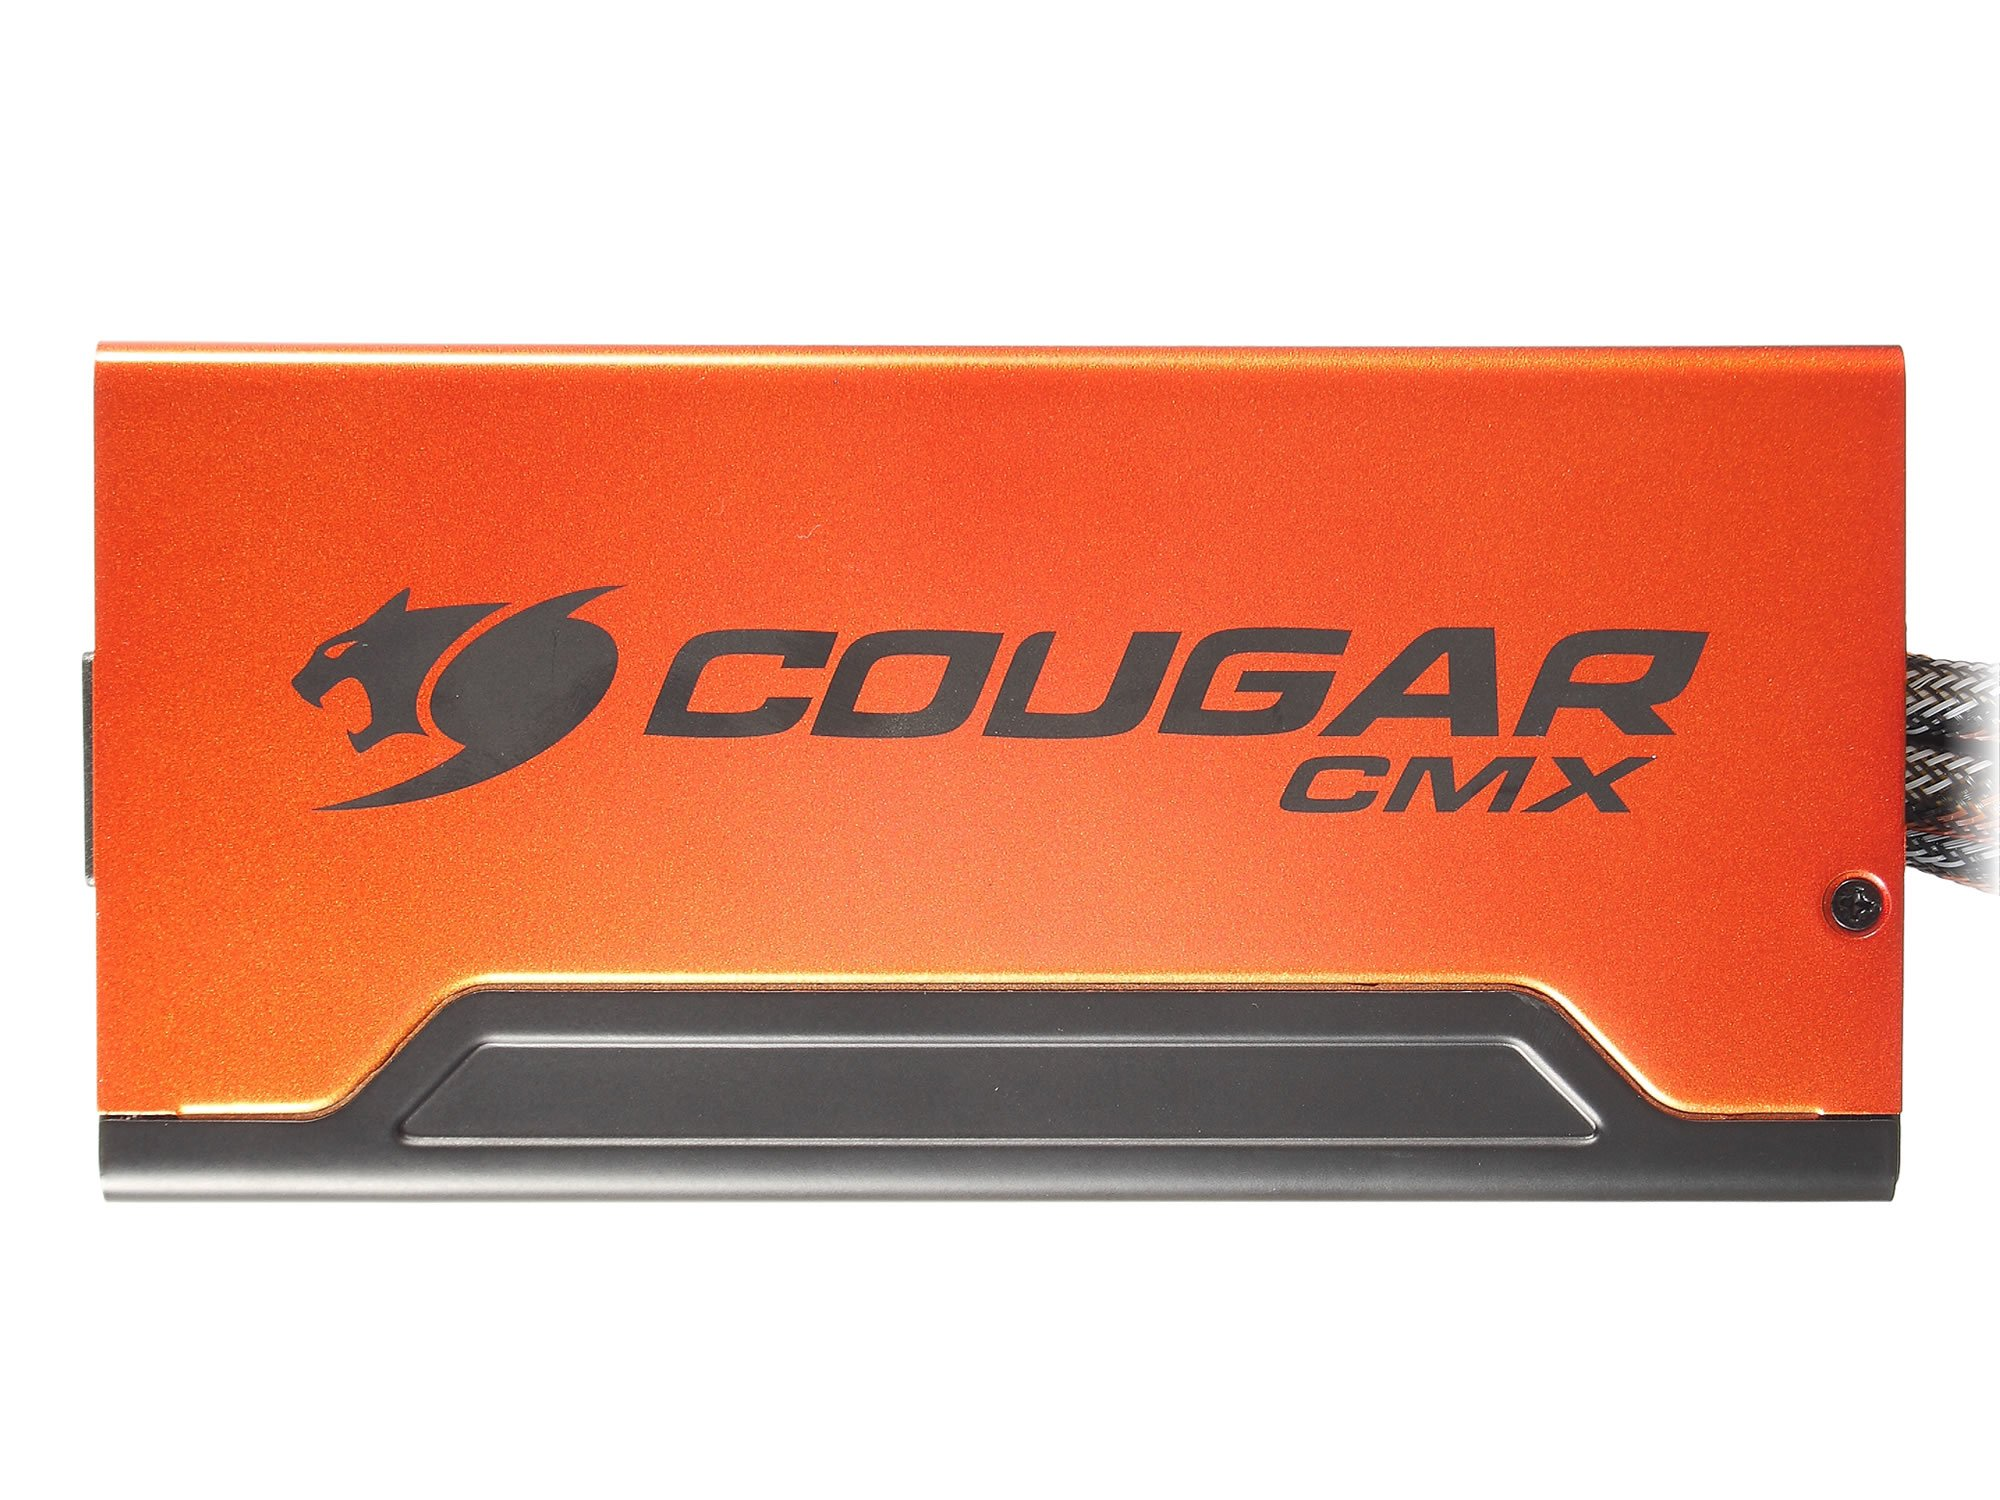 COUGAR CMX1000 / 1000CMX 1000W ATX12V / EPS12V SLI Ready CrossFire Ready 80 PLUS BRONZE Certified flexible cable management Active PFC Power Supply by Cougar (Image #5)